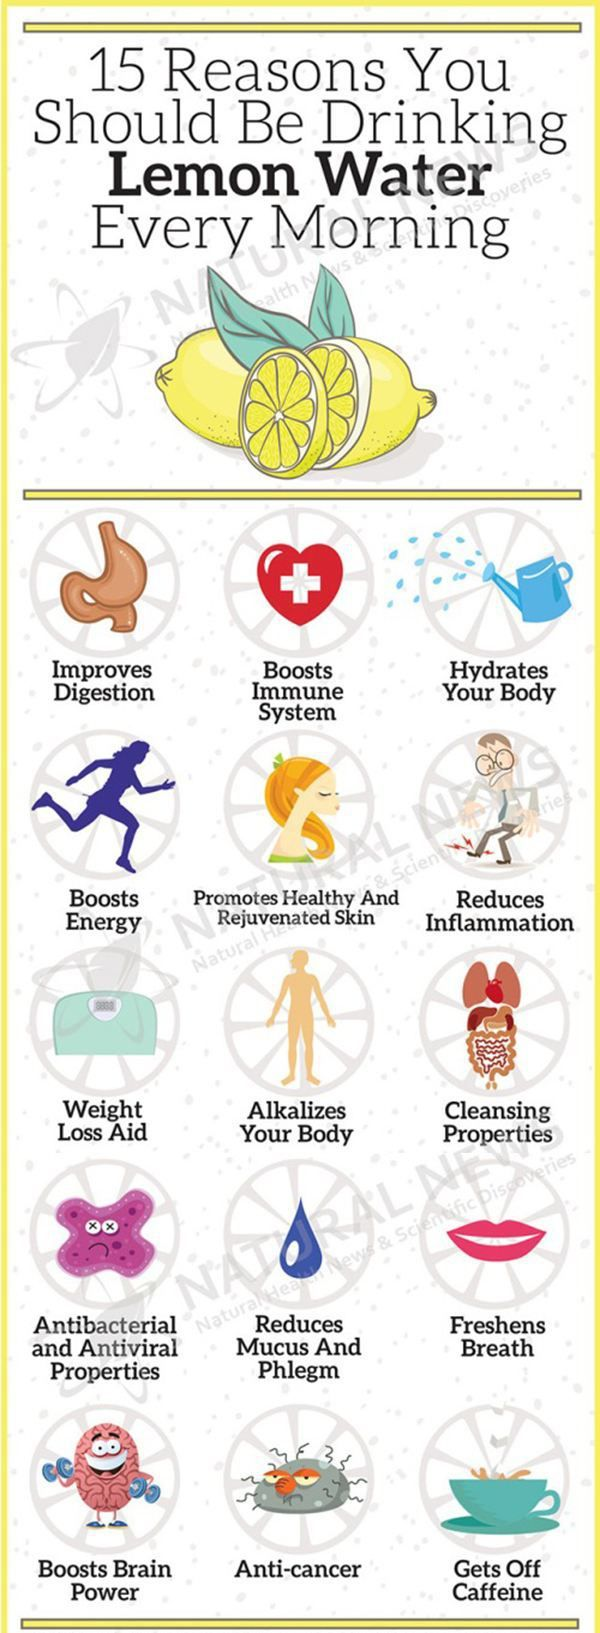 Reasons to drink lemon water in the morning. Freedom Massage, 610-644-9003 or freedommassage.com